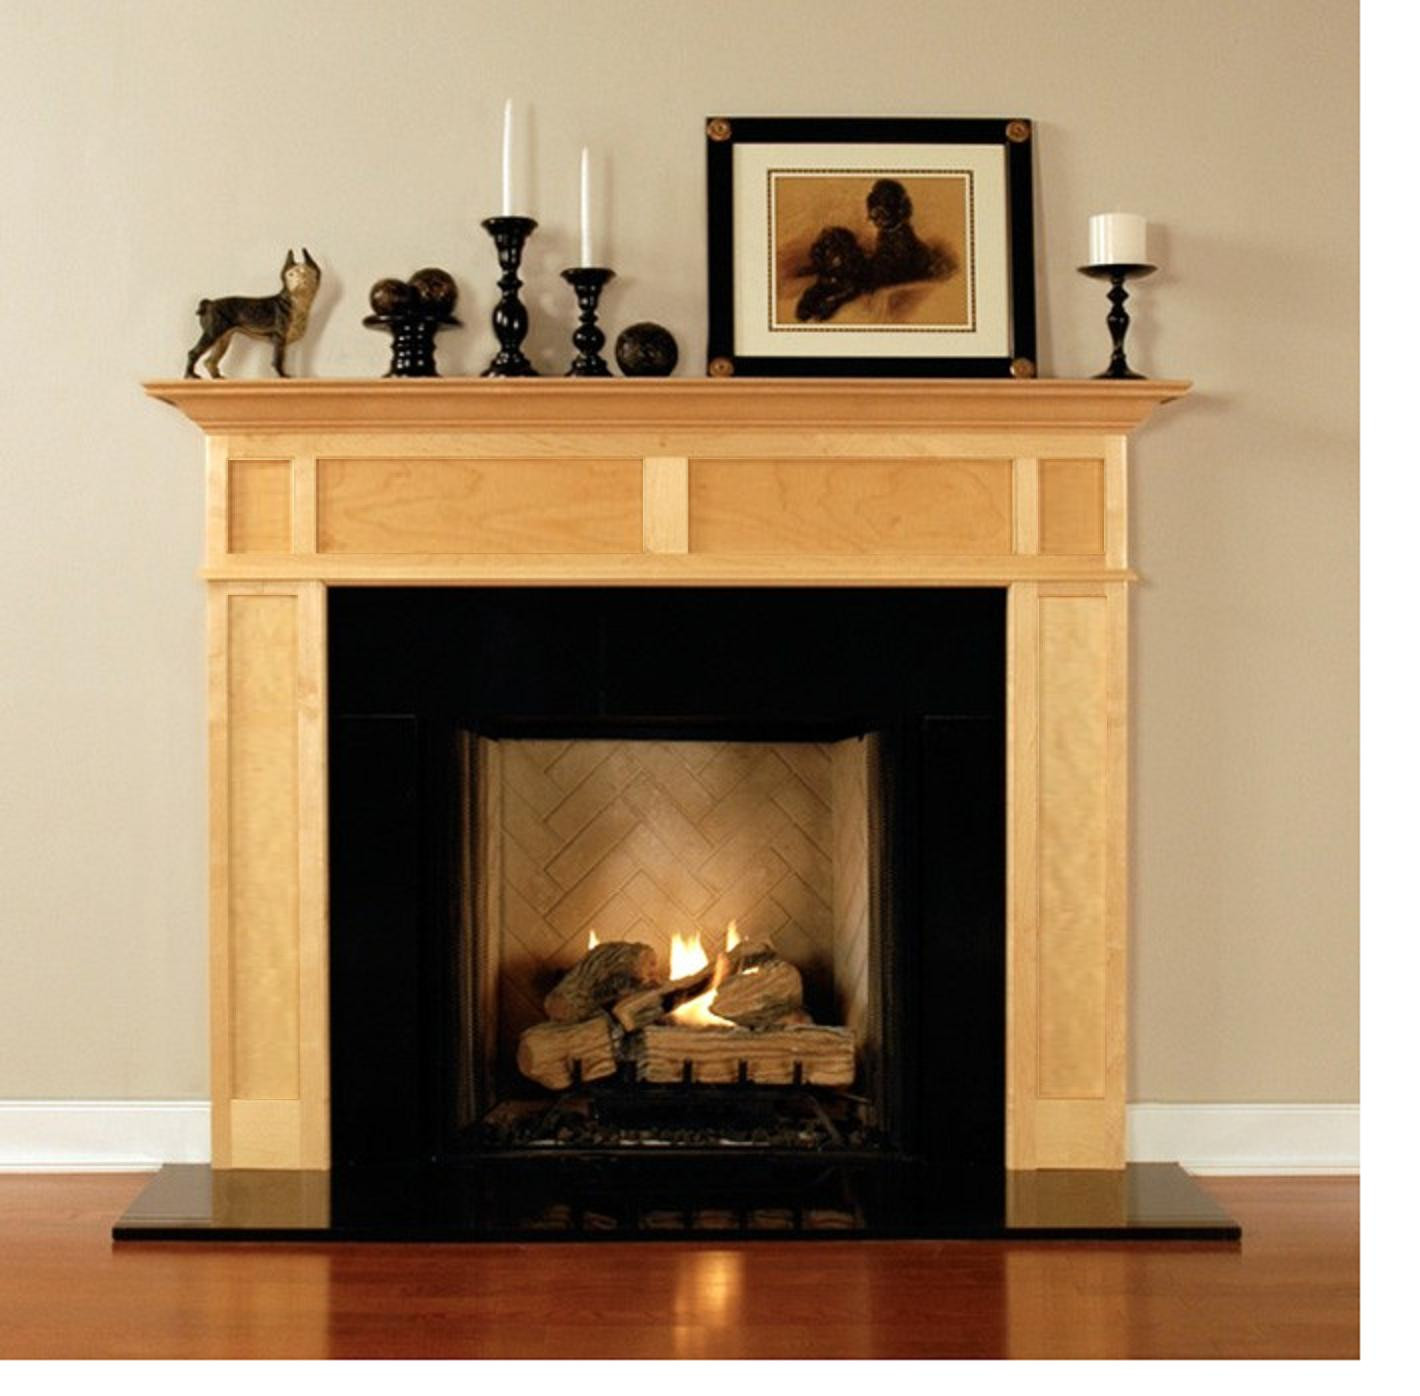 Best ideas about Wood For Fireplace . Save or Pin Wood Fireplace Mantels for Fireplaces Surrounds Now.